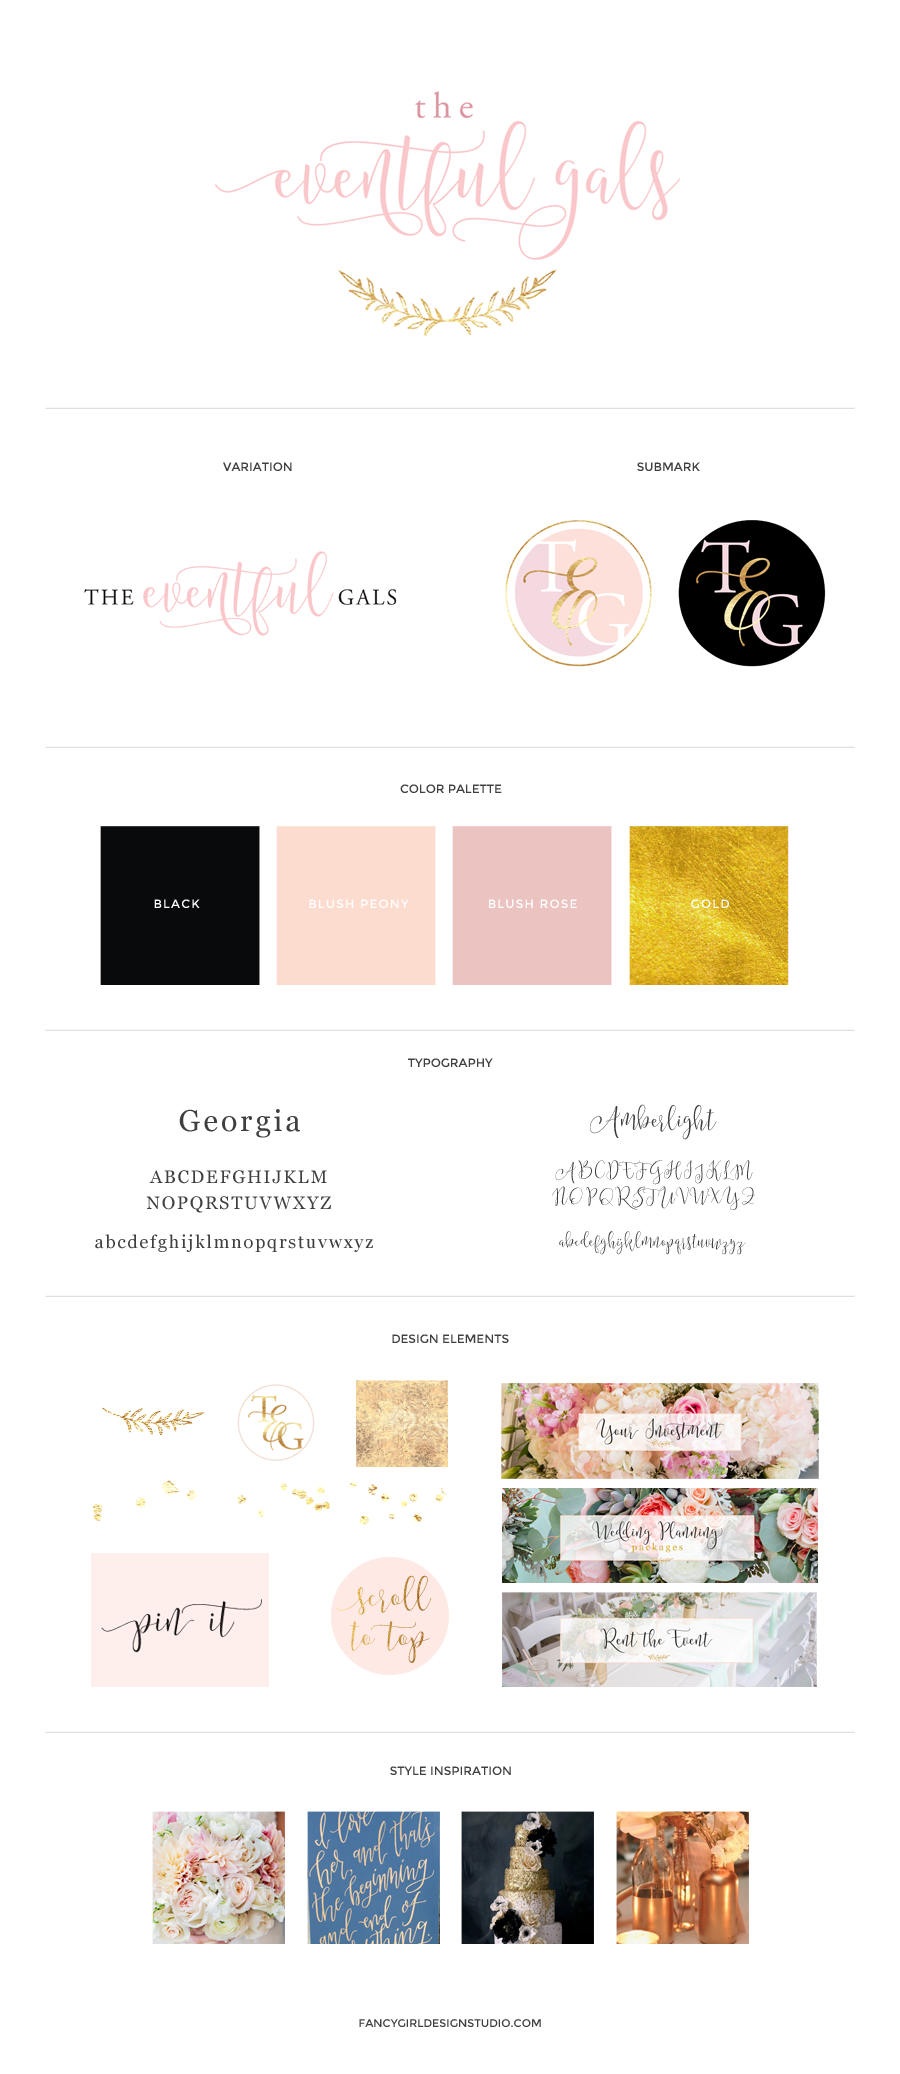 The Eventful Gals Brand Identity Guide